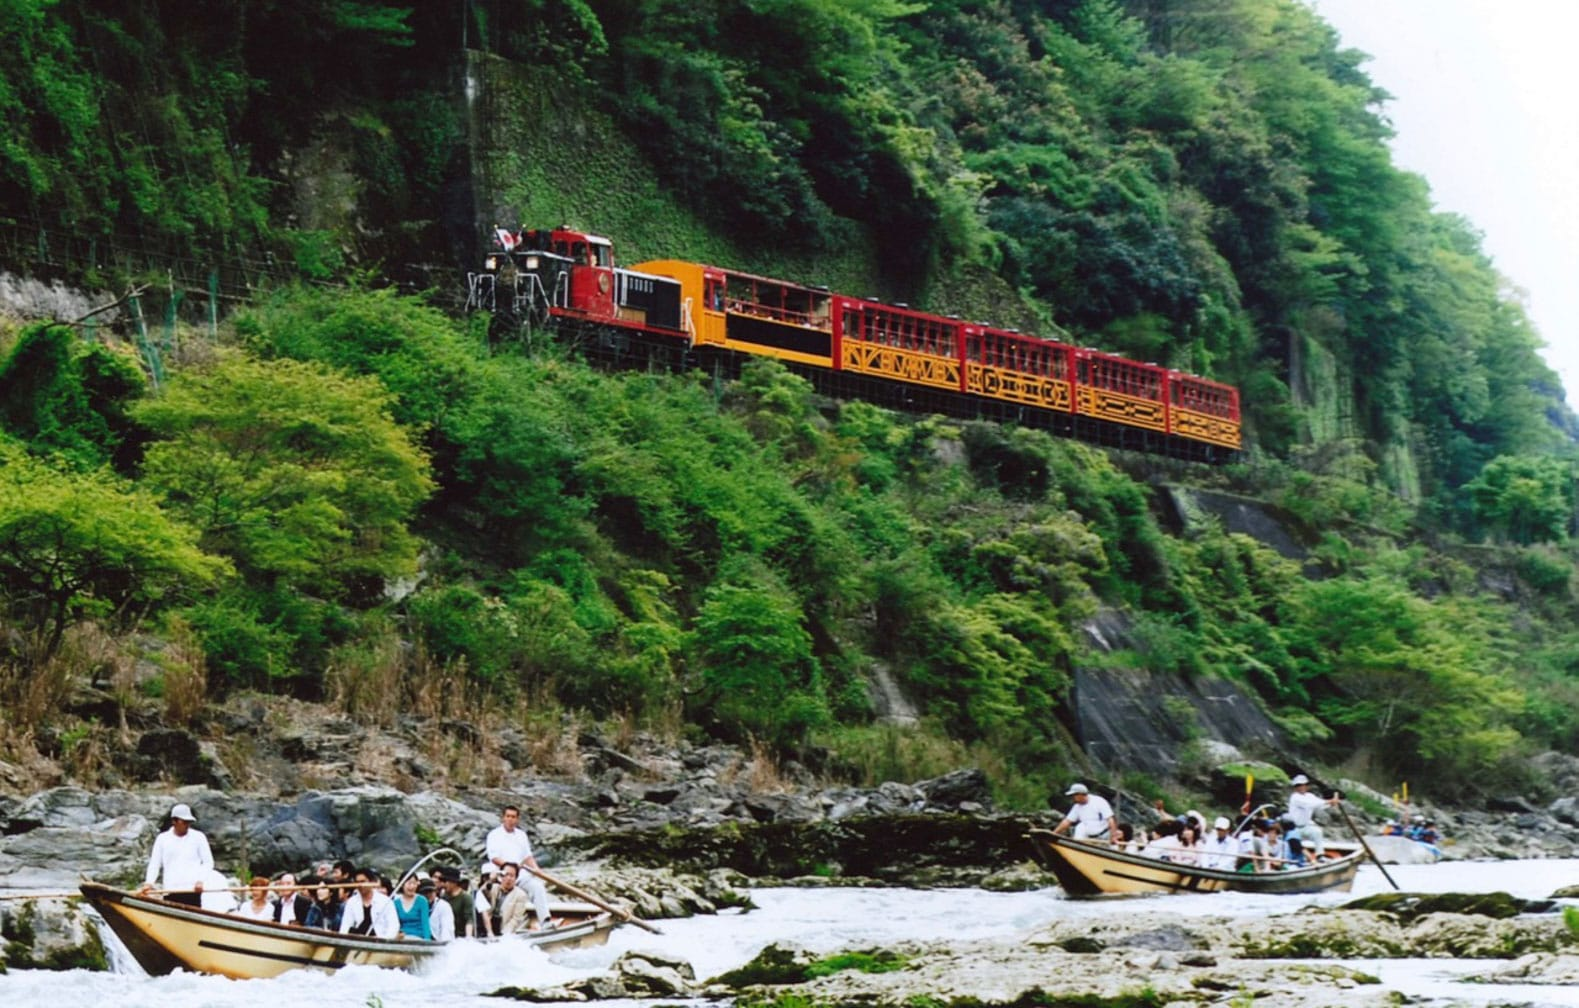 Scenic ride in the eastern Kyoto mountains on the Sagano Romantic Train. Photo courtesy of West Japan Railway Company